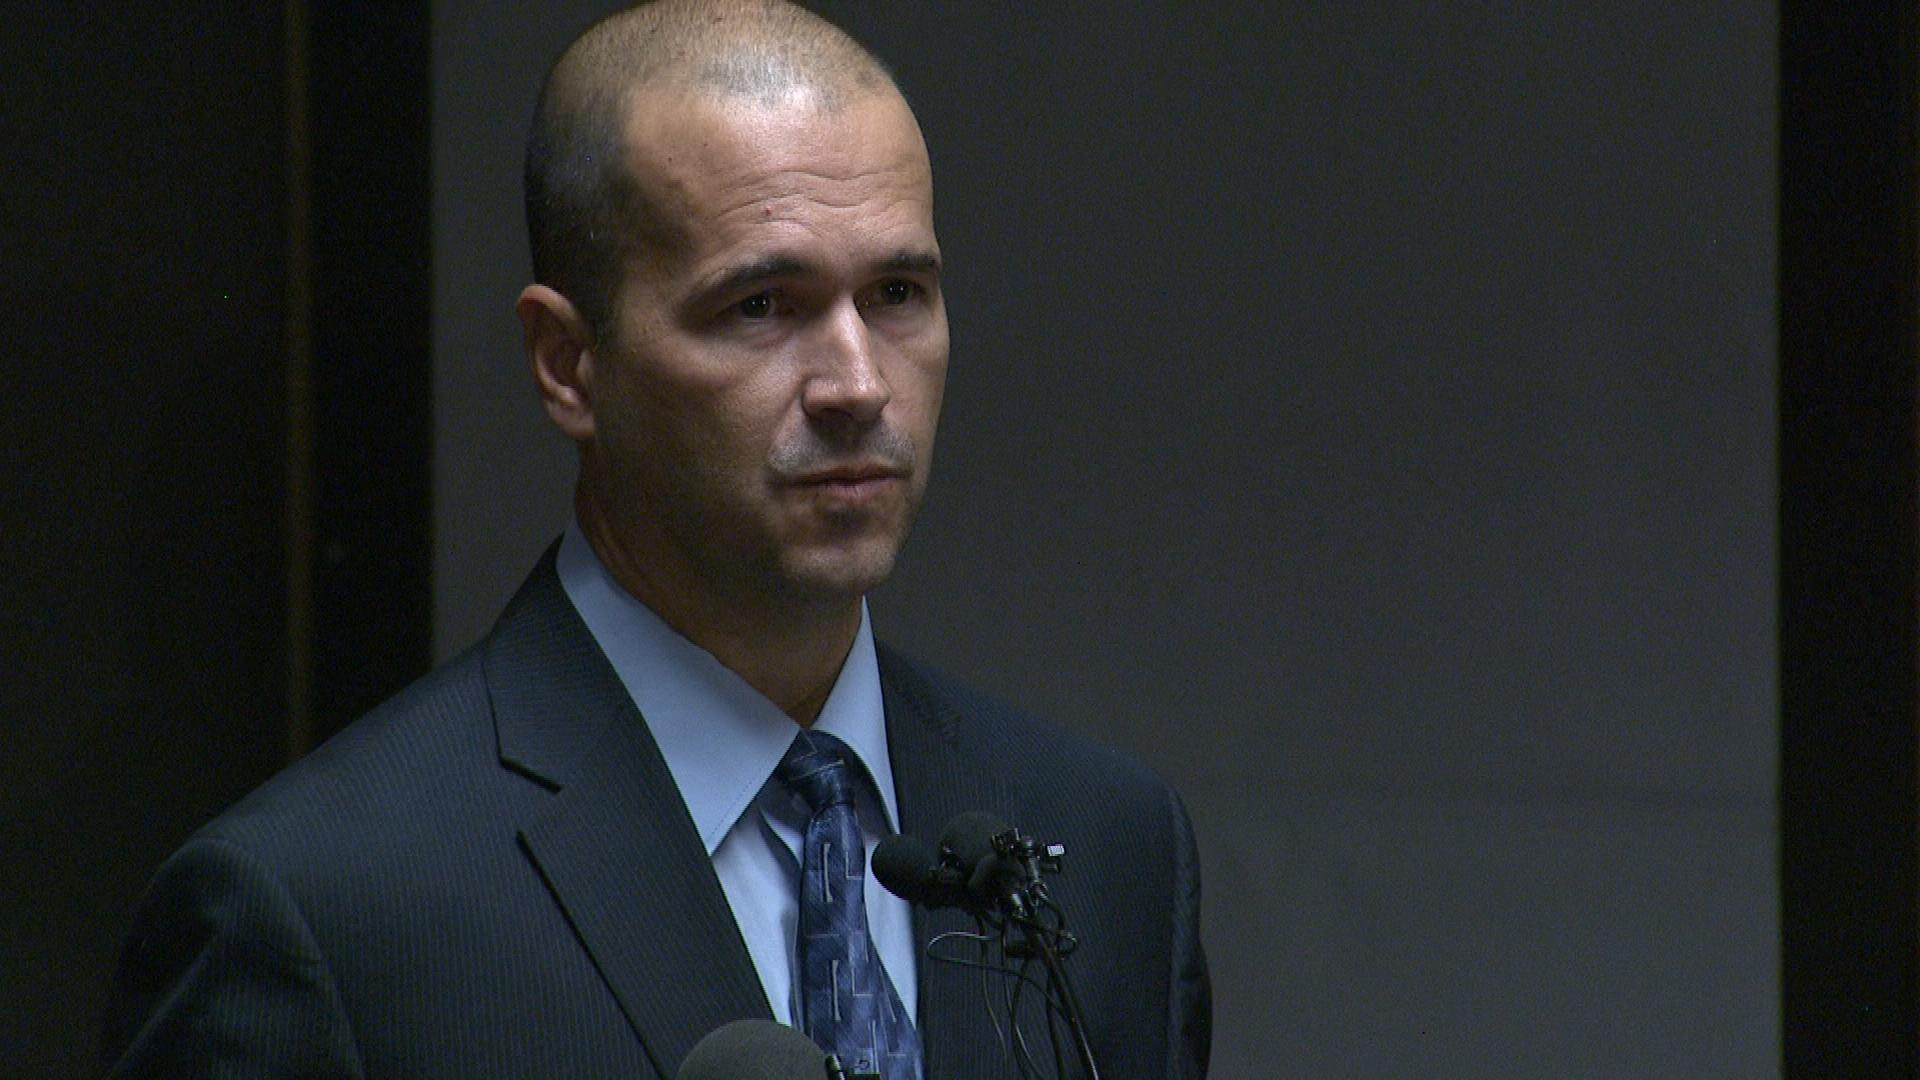 El Paso County Sheriff Terry Maketa at the news conference on Tuesday (credit: CBS)